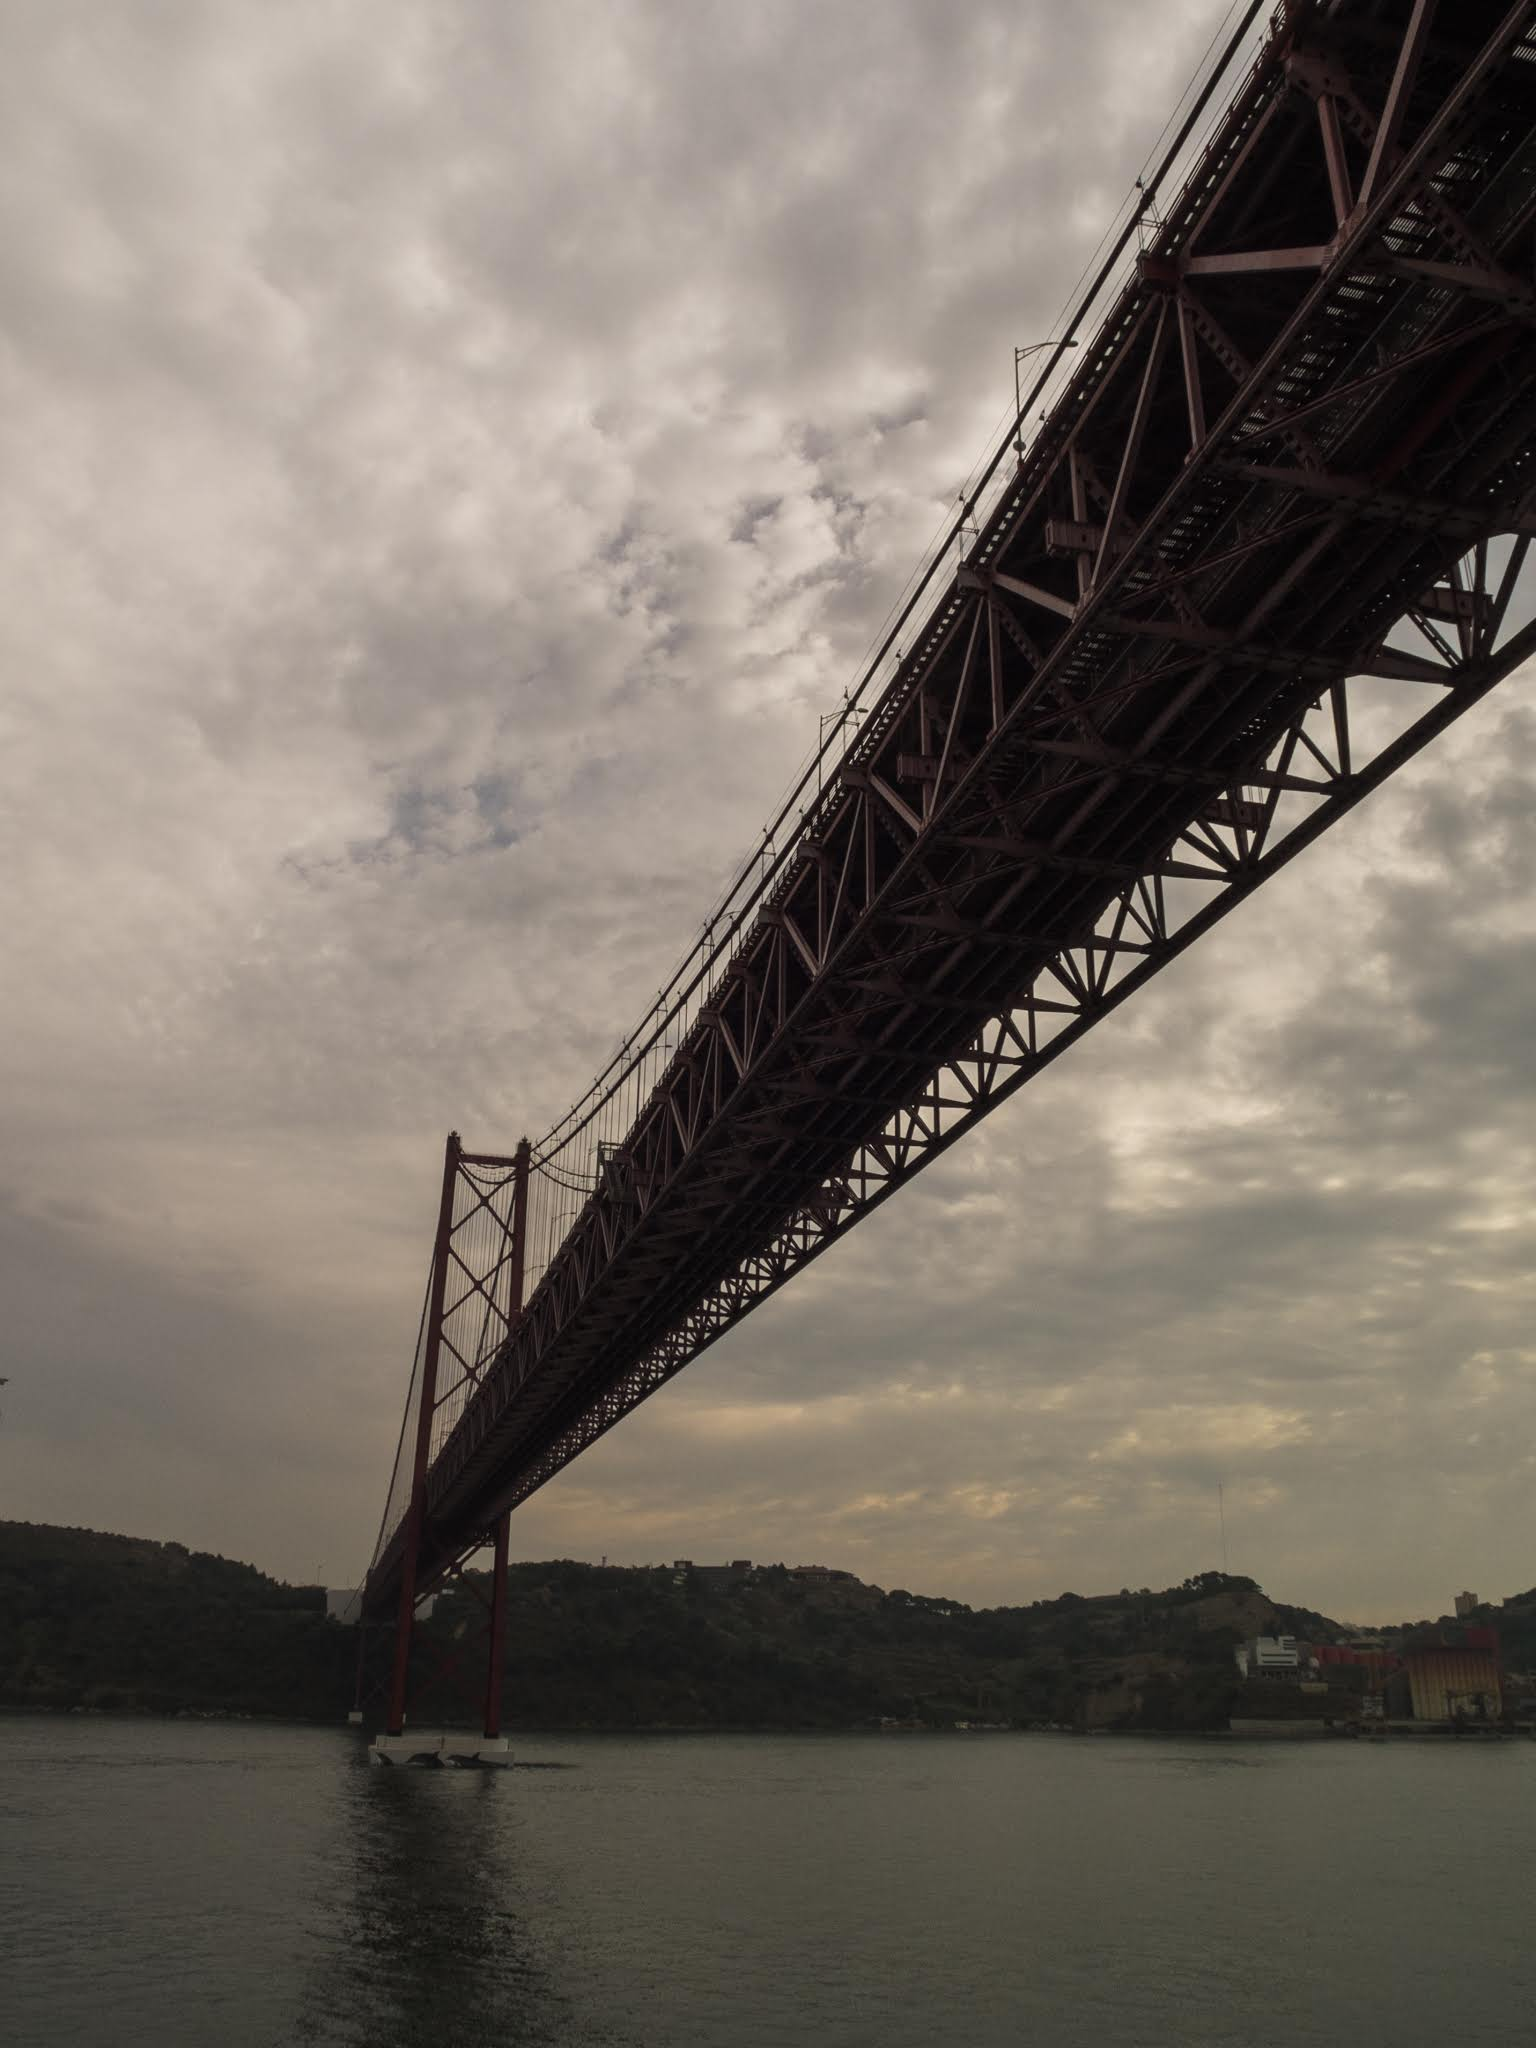 Under the 25 de Abril suspension bridge in Lisbon.